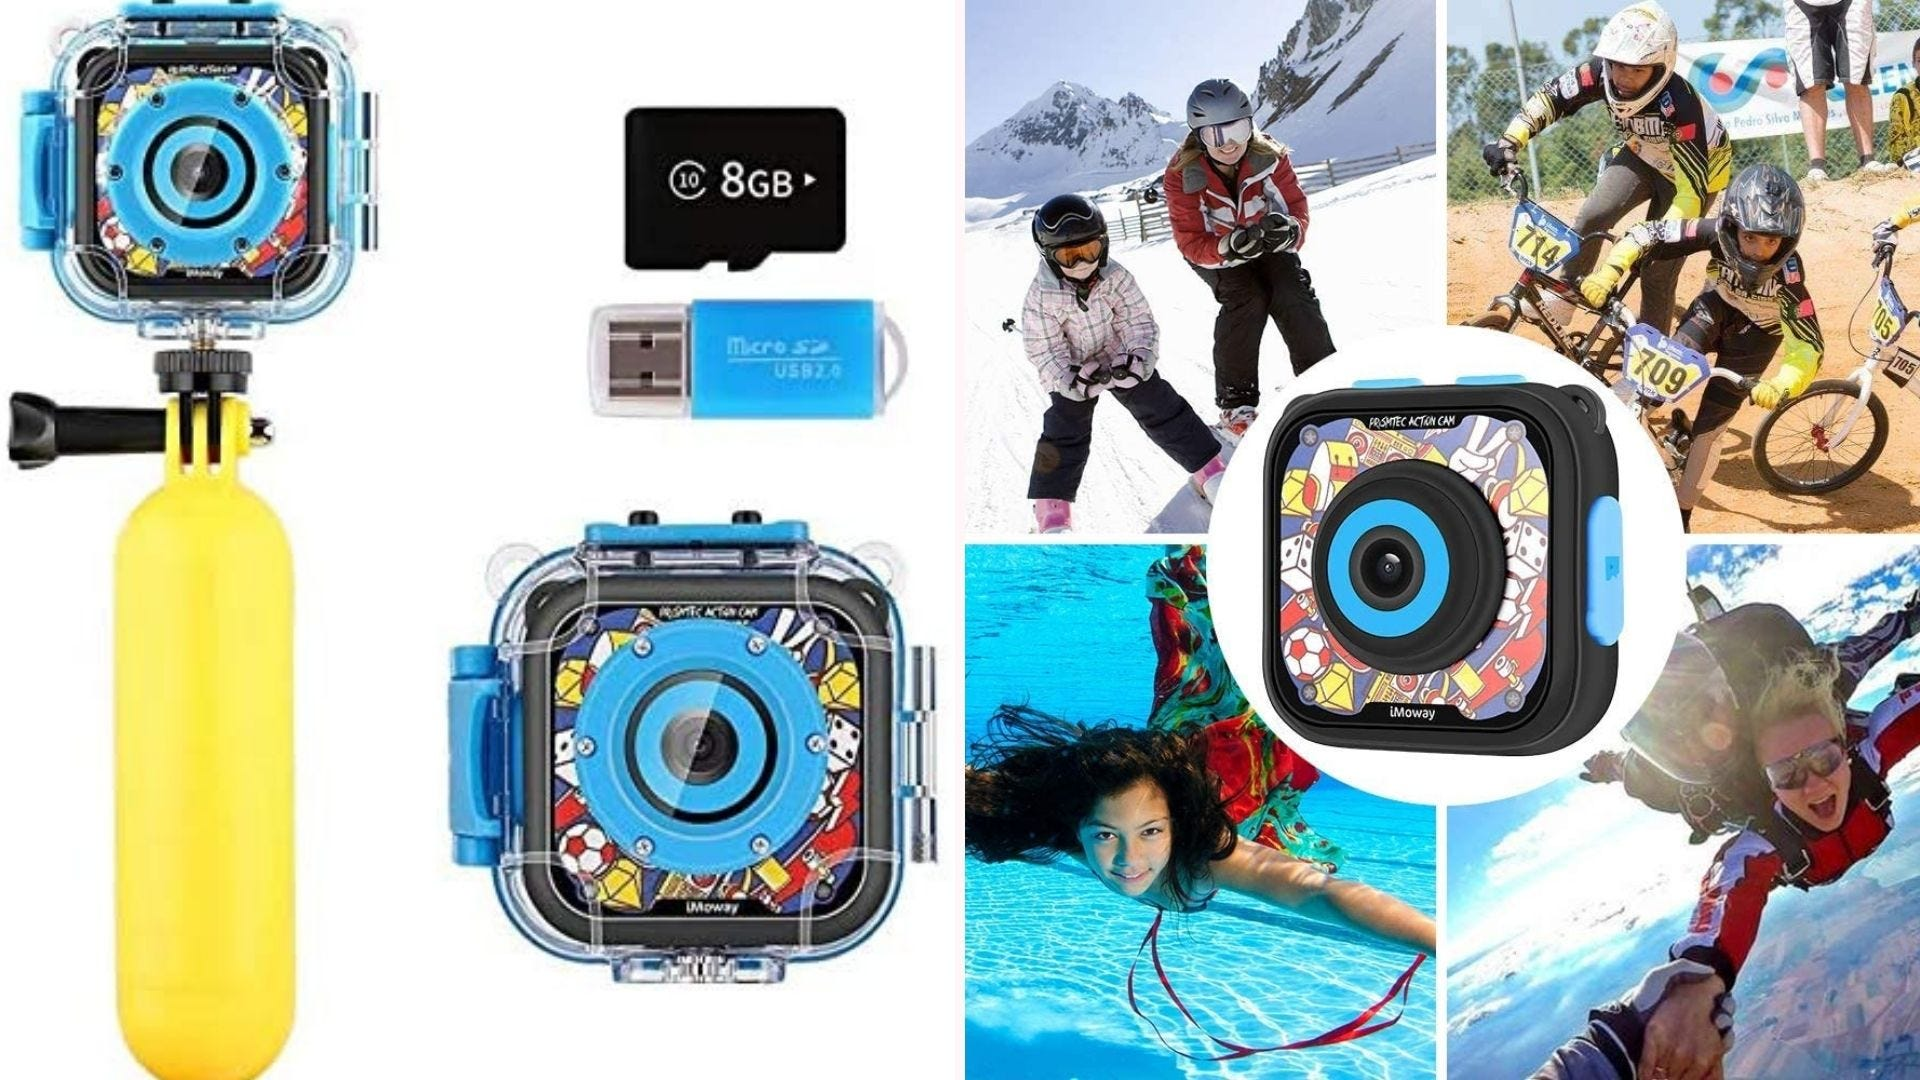 On the left, a palm-sized camera with a clear waterproof case sits on top of a yellow floating hand grip. On the right, the camera is surrounded by four rugged environments it can thrive: skiing, dirt biking, skydiving, and pool play.